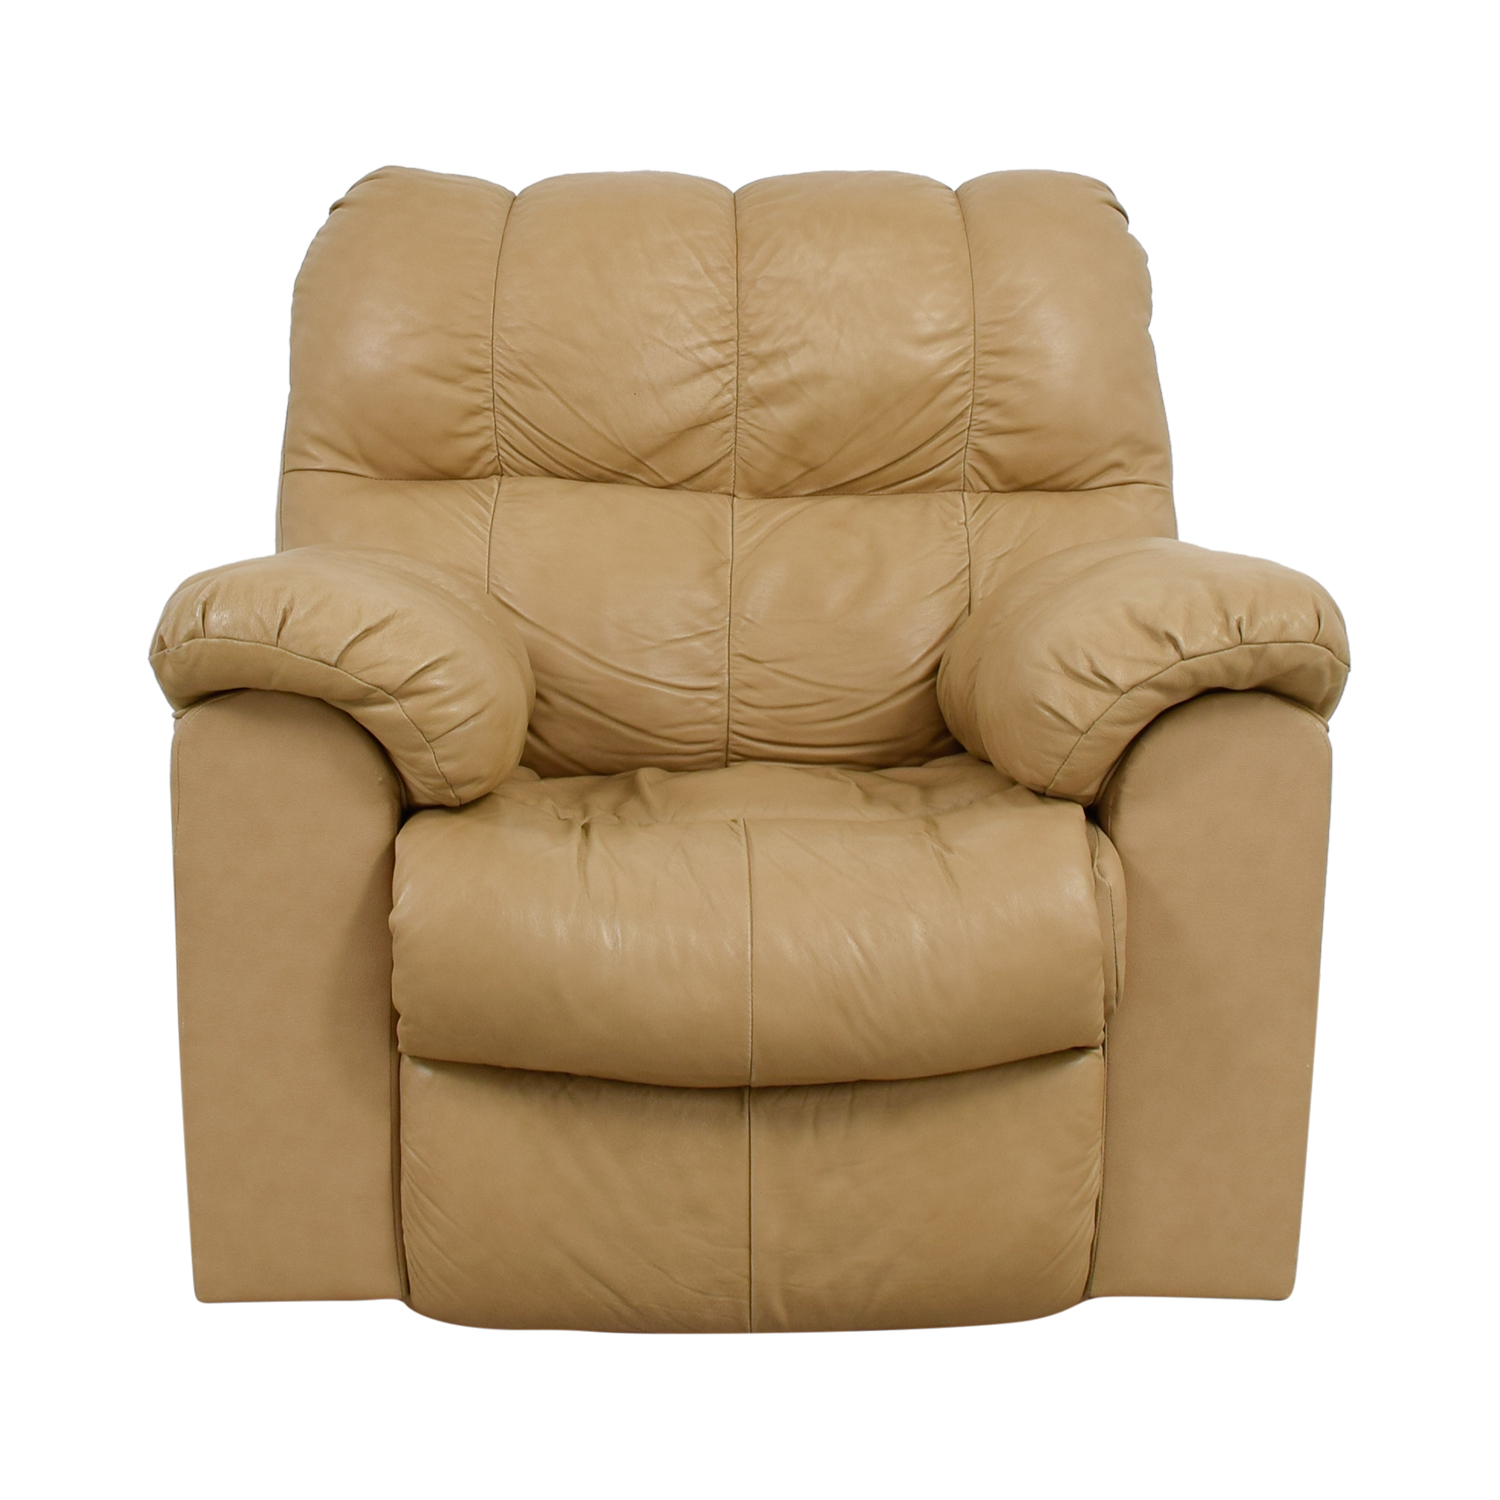 90 Off Ashley Furniture Ashley Furniture Tan Leather Recliner